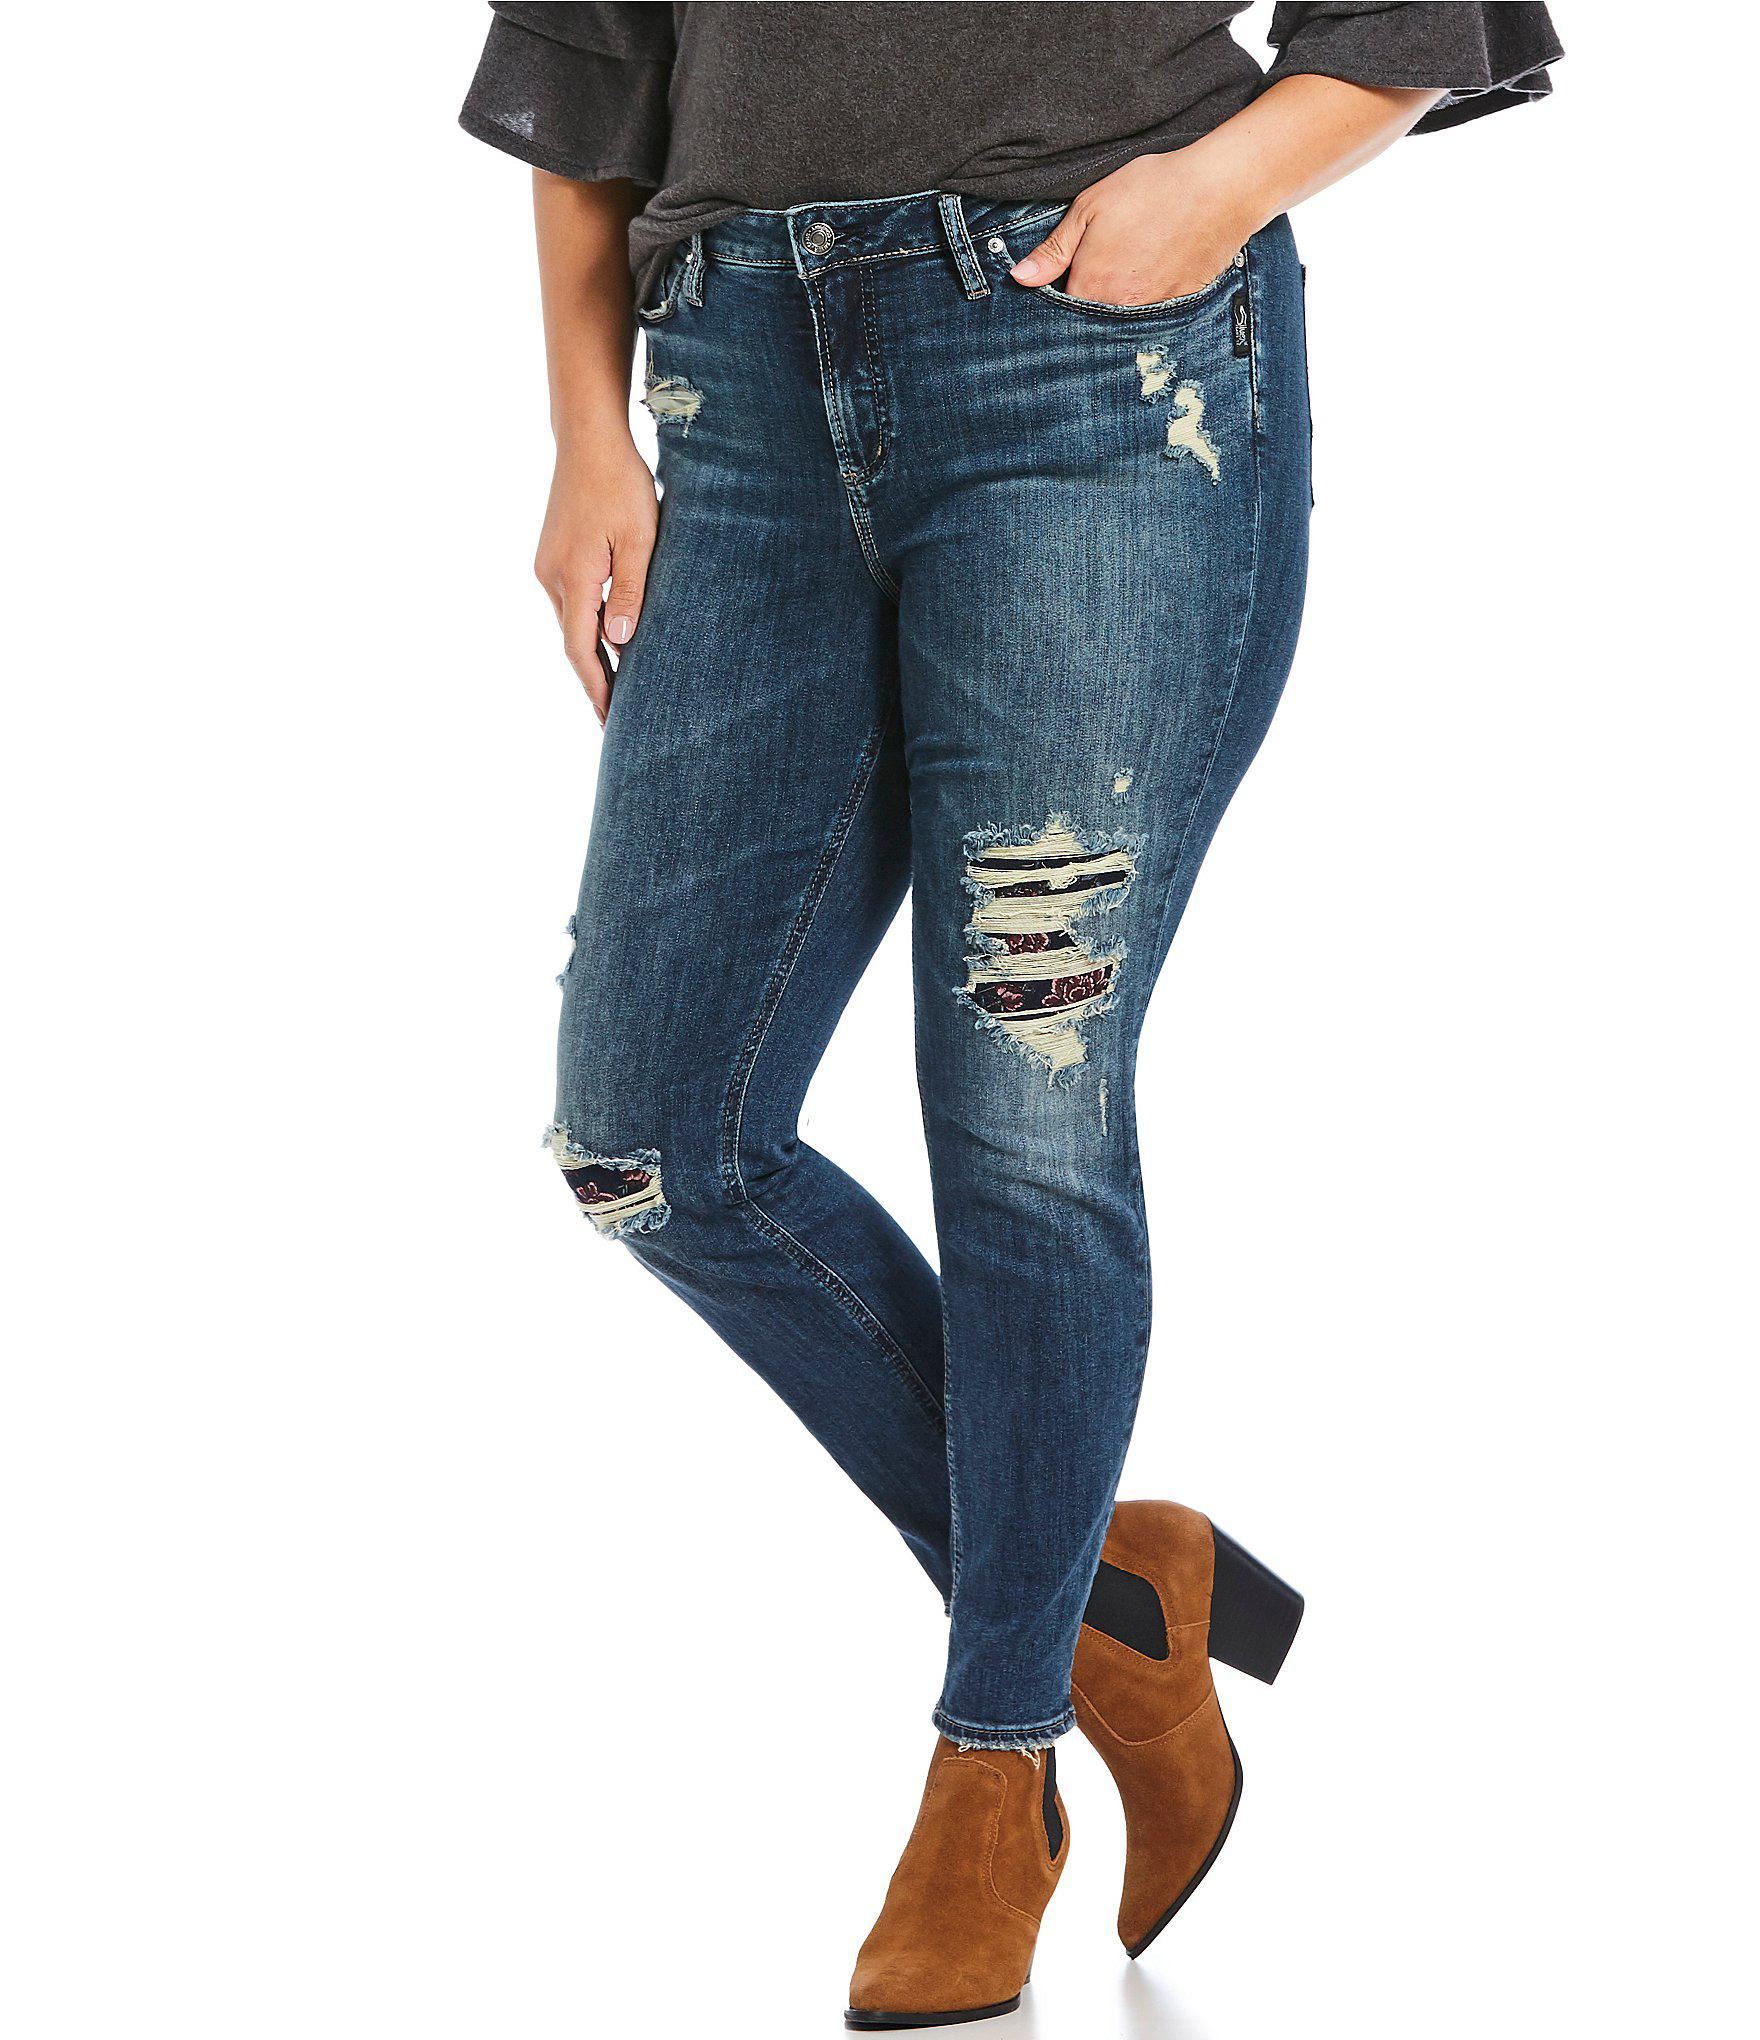 cd4e5366923 Silver Jeans Co. Plus Size Avery Distressed High Rise Skinny Ankle ...